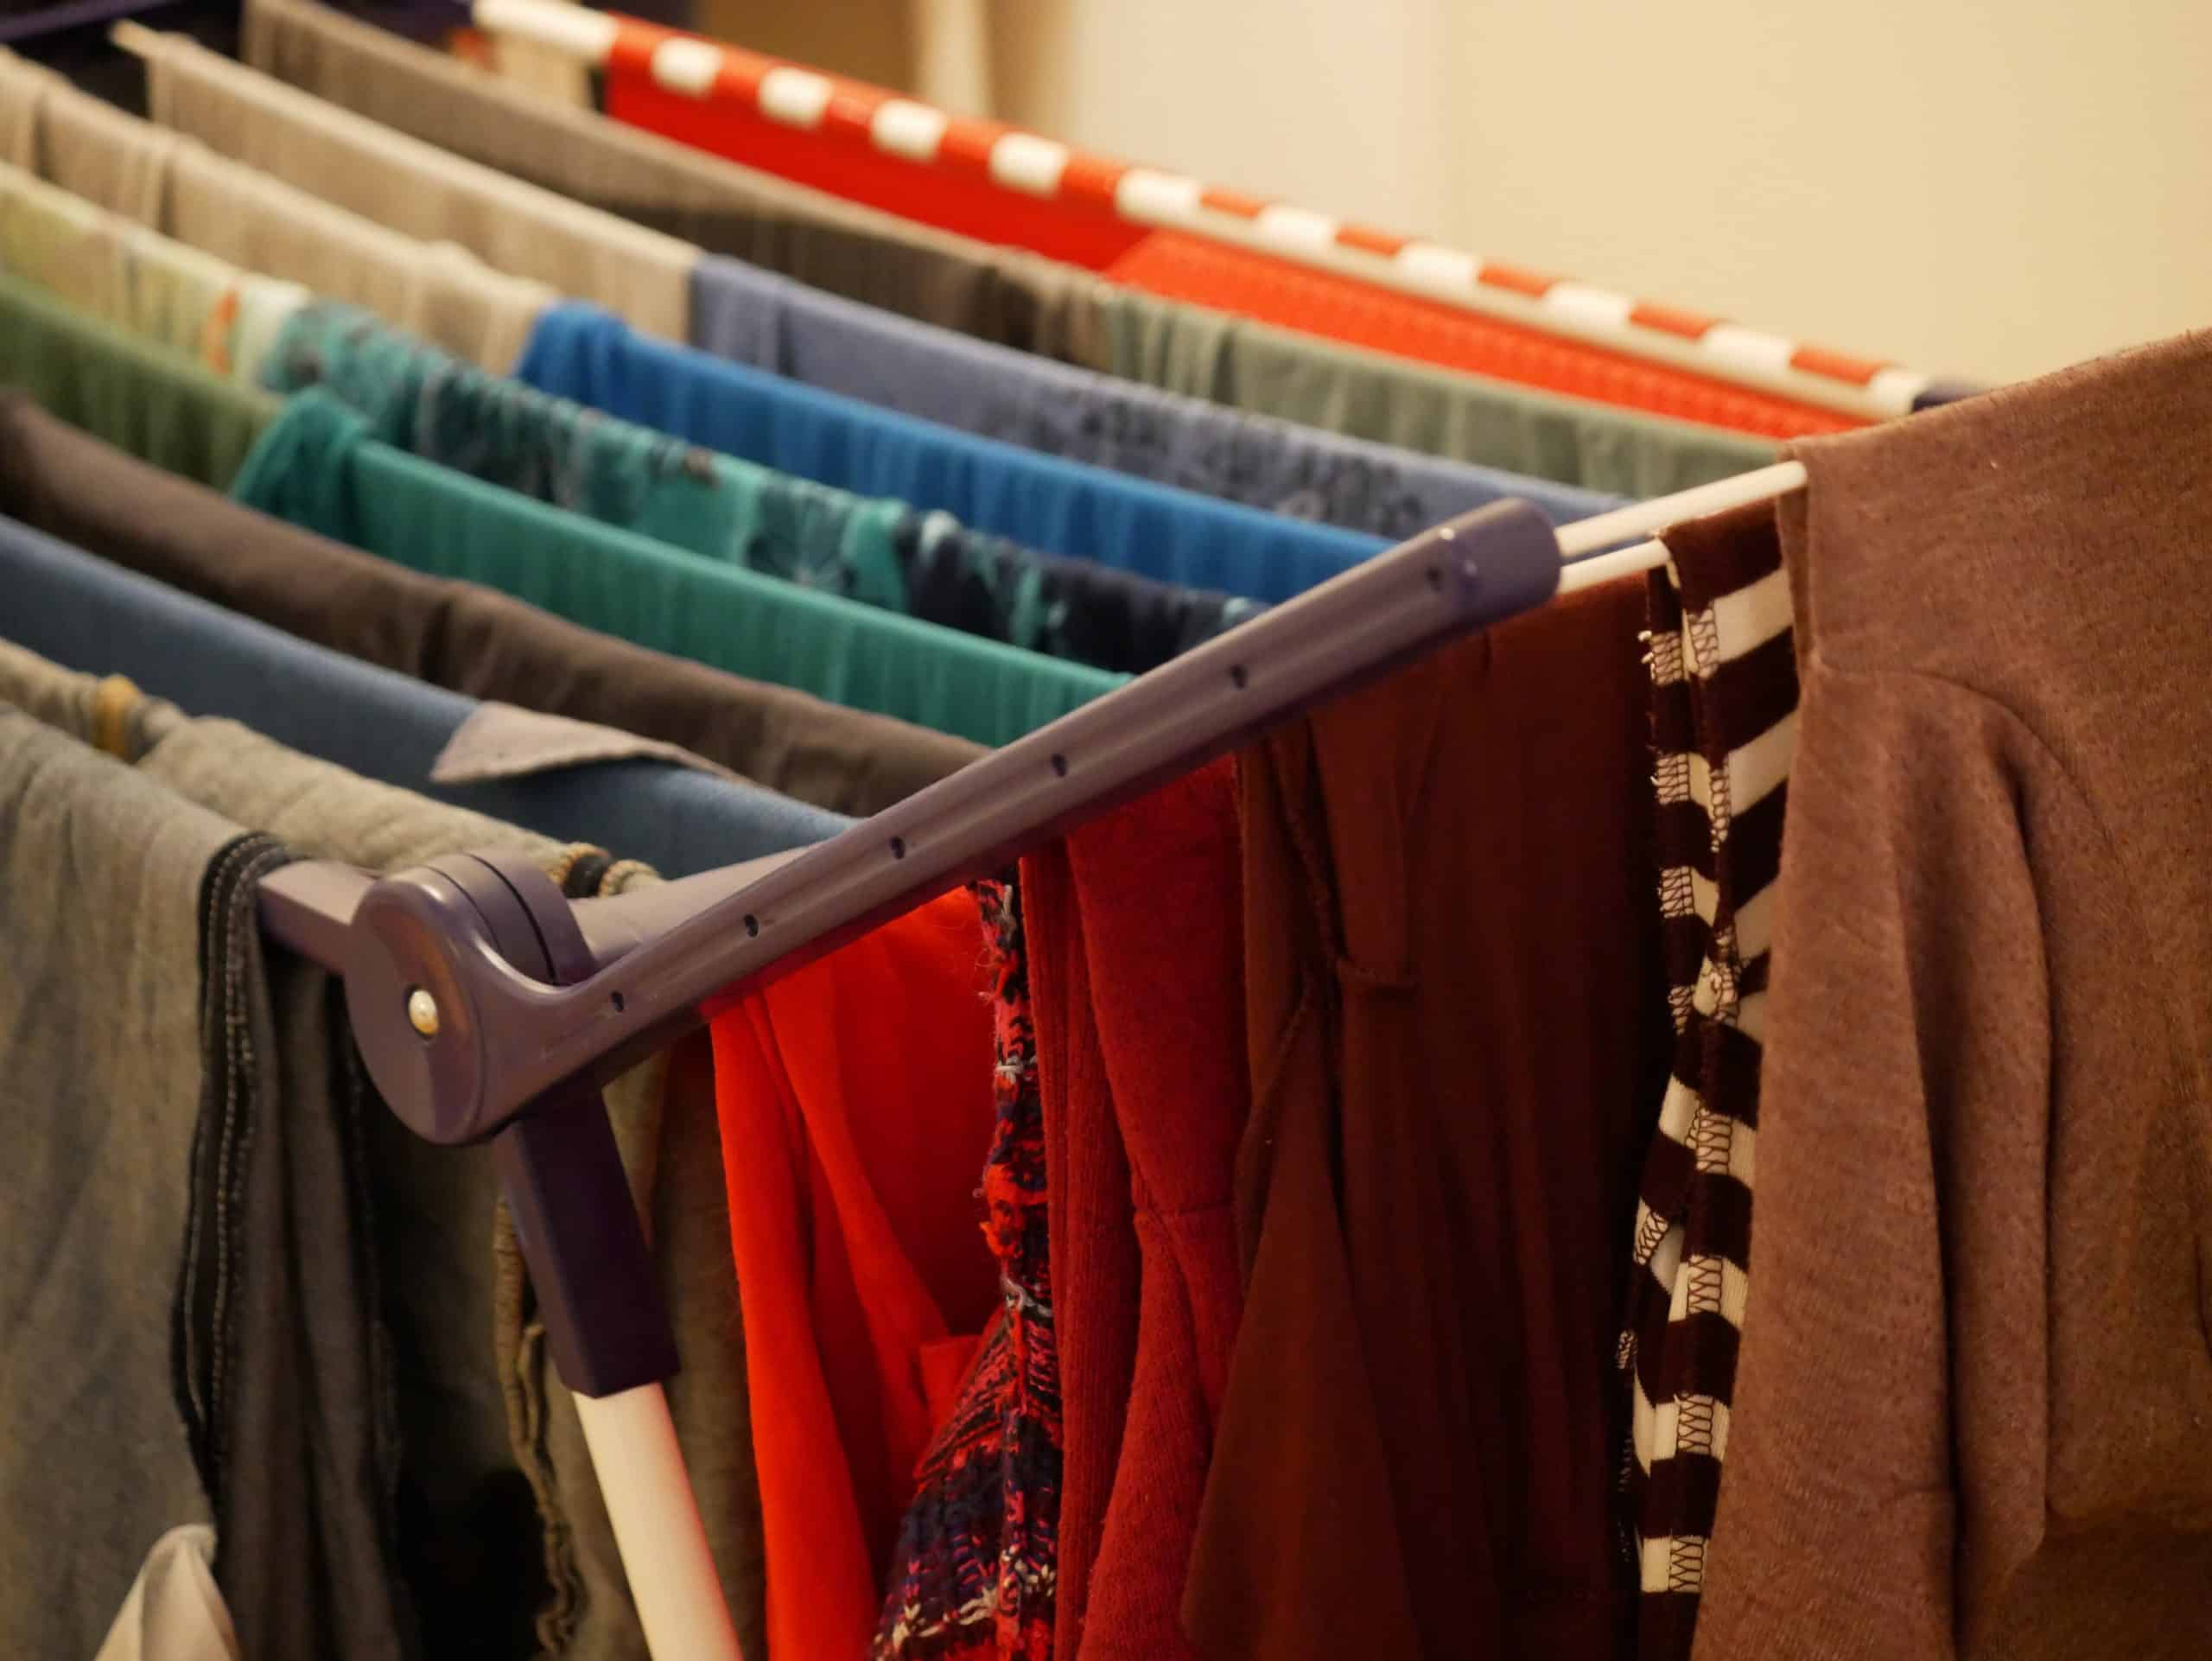 save money on laundry - colorful clothes draped over laundry drying rack